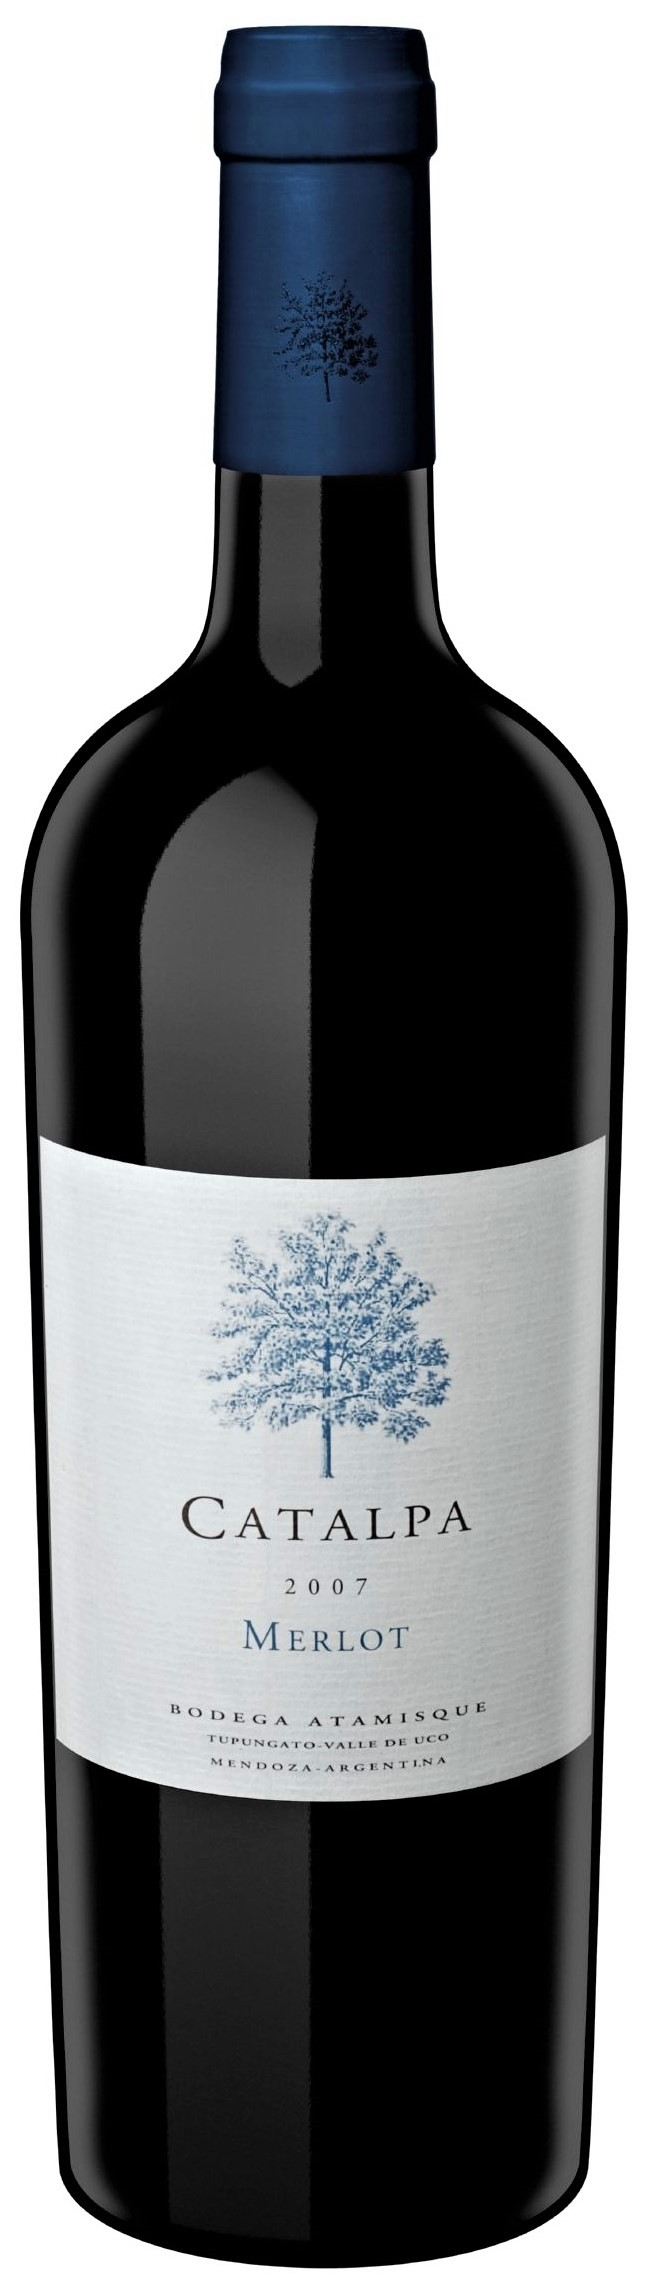 Atamisque - Catalpa - Merlot - 2017